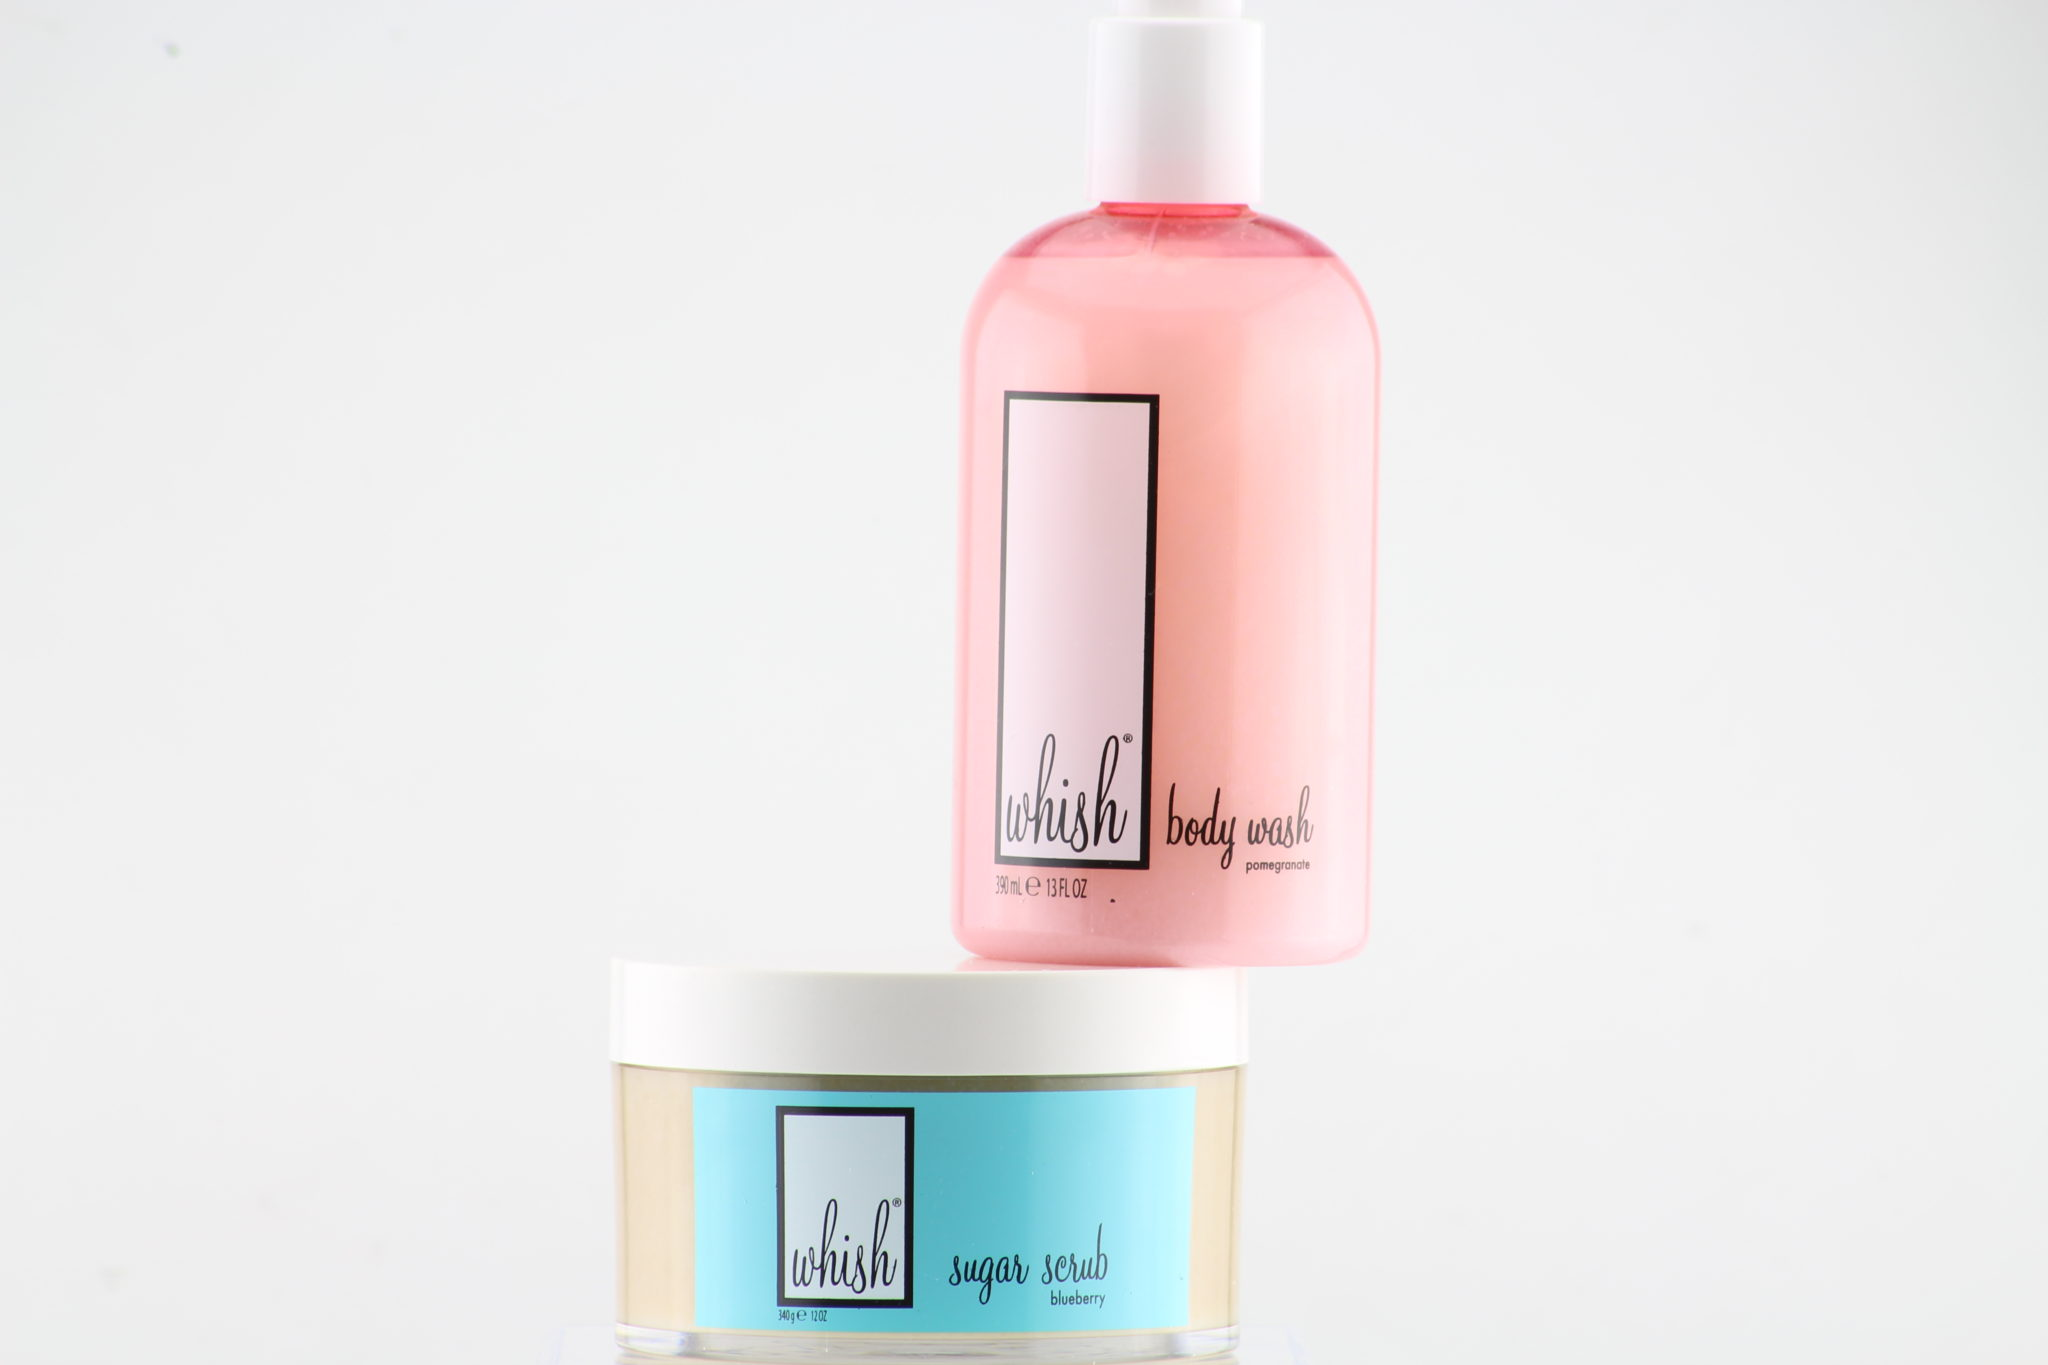 Whish Body Product Review